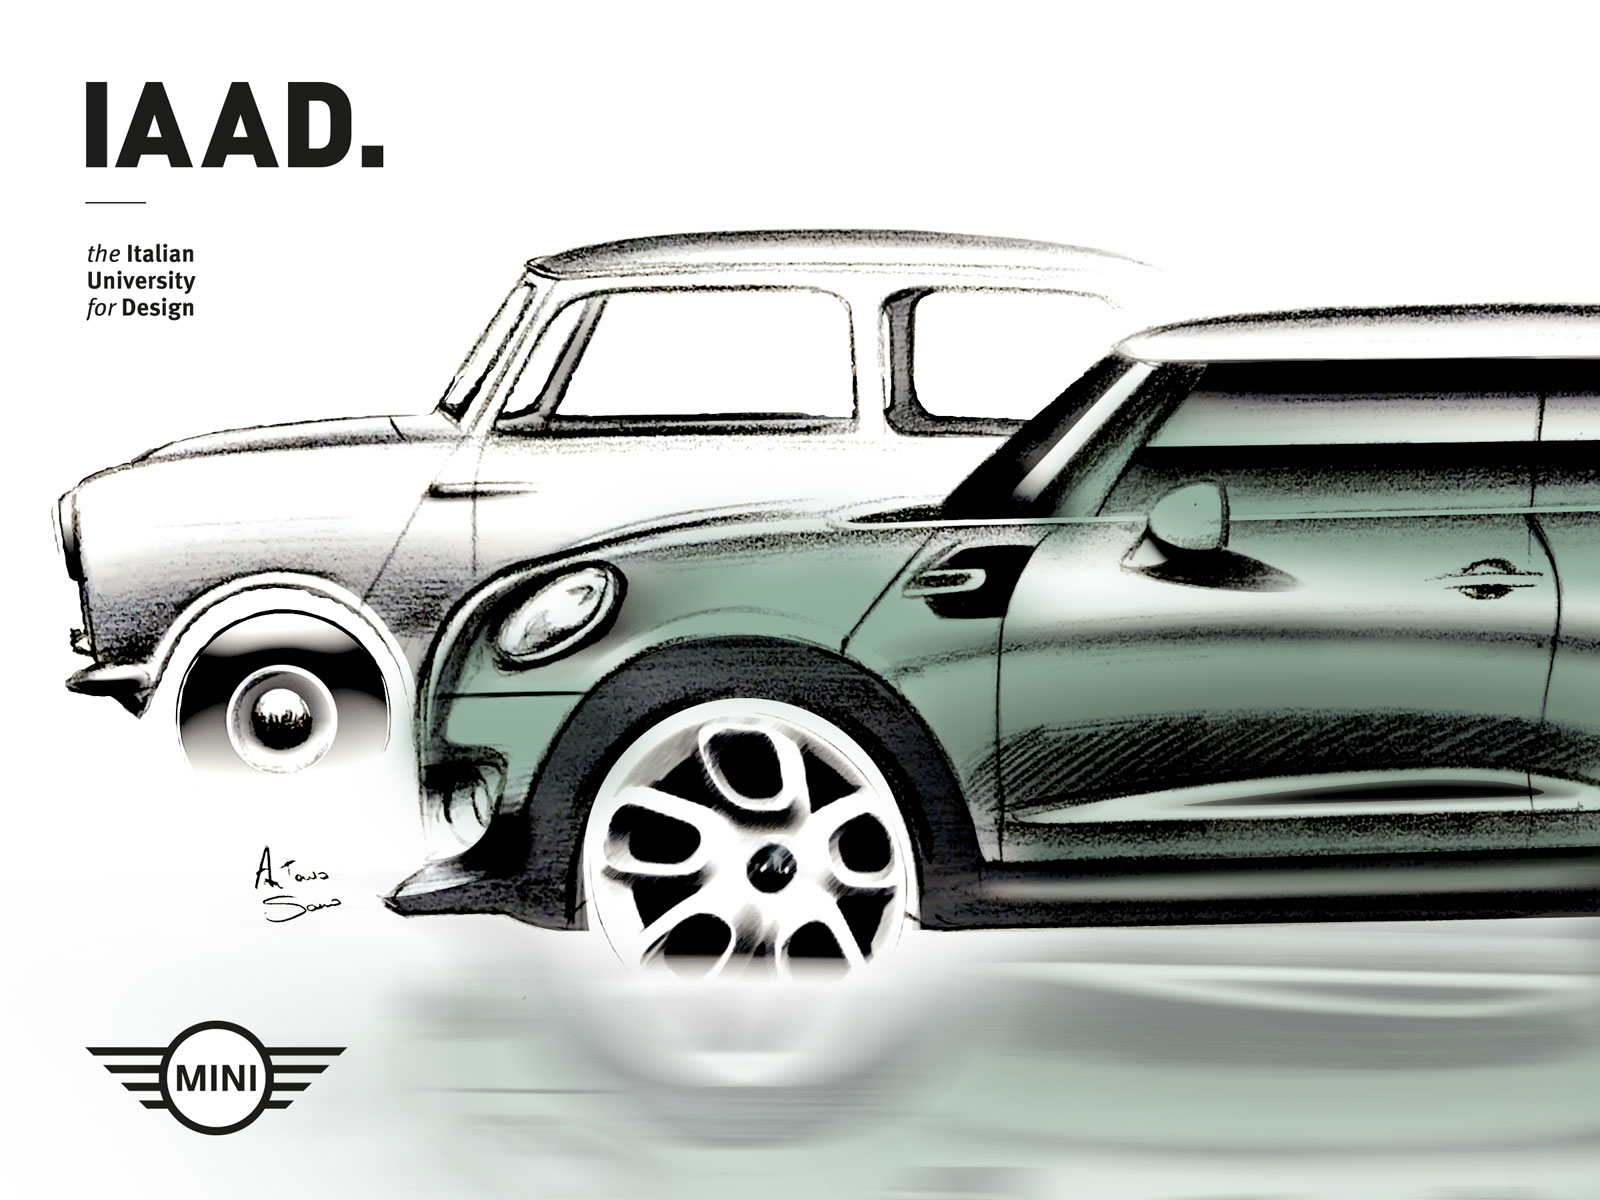 Design The Next Mini Cooper And Win A Scholarship For Iaad S Transportation Bachelor Degree Course Car Body Design